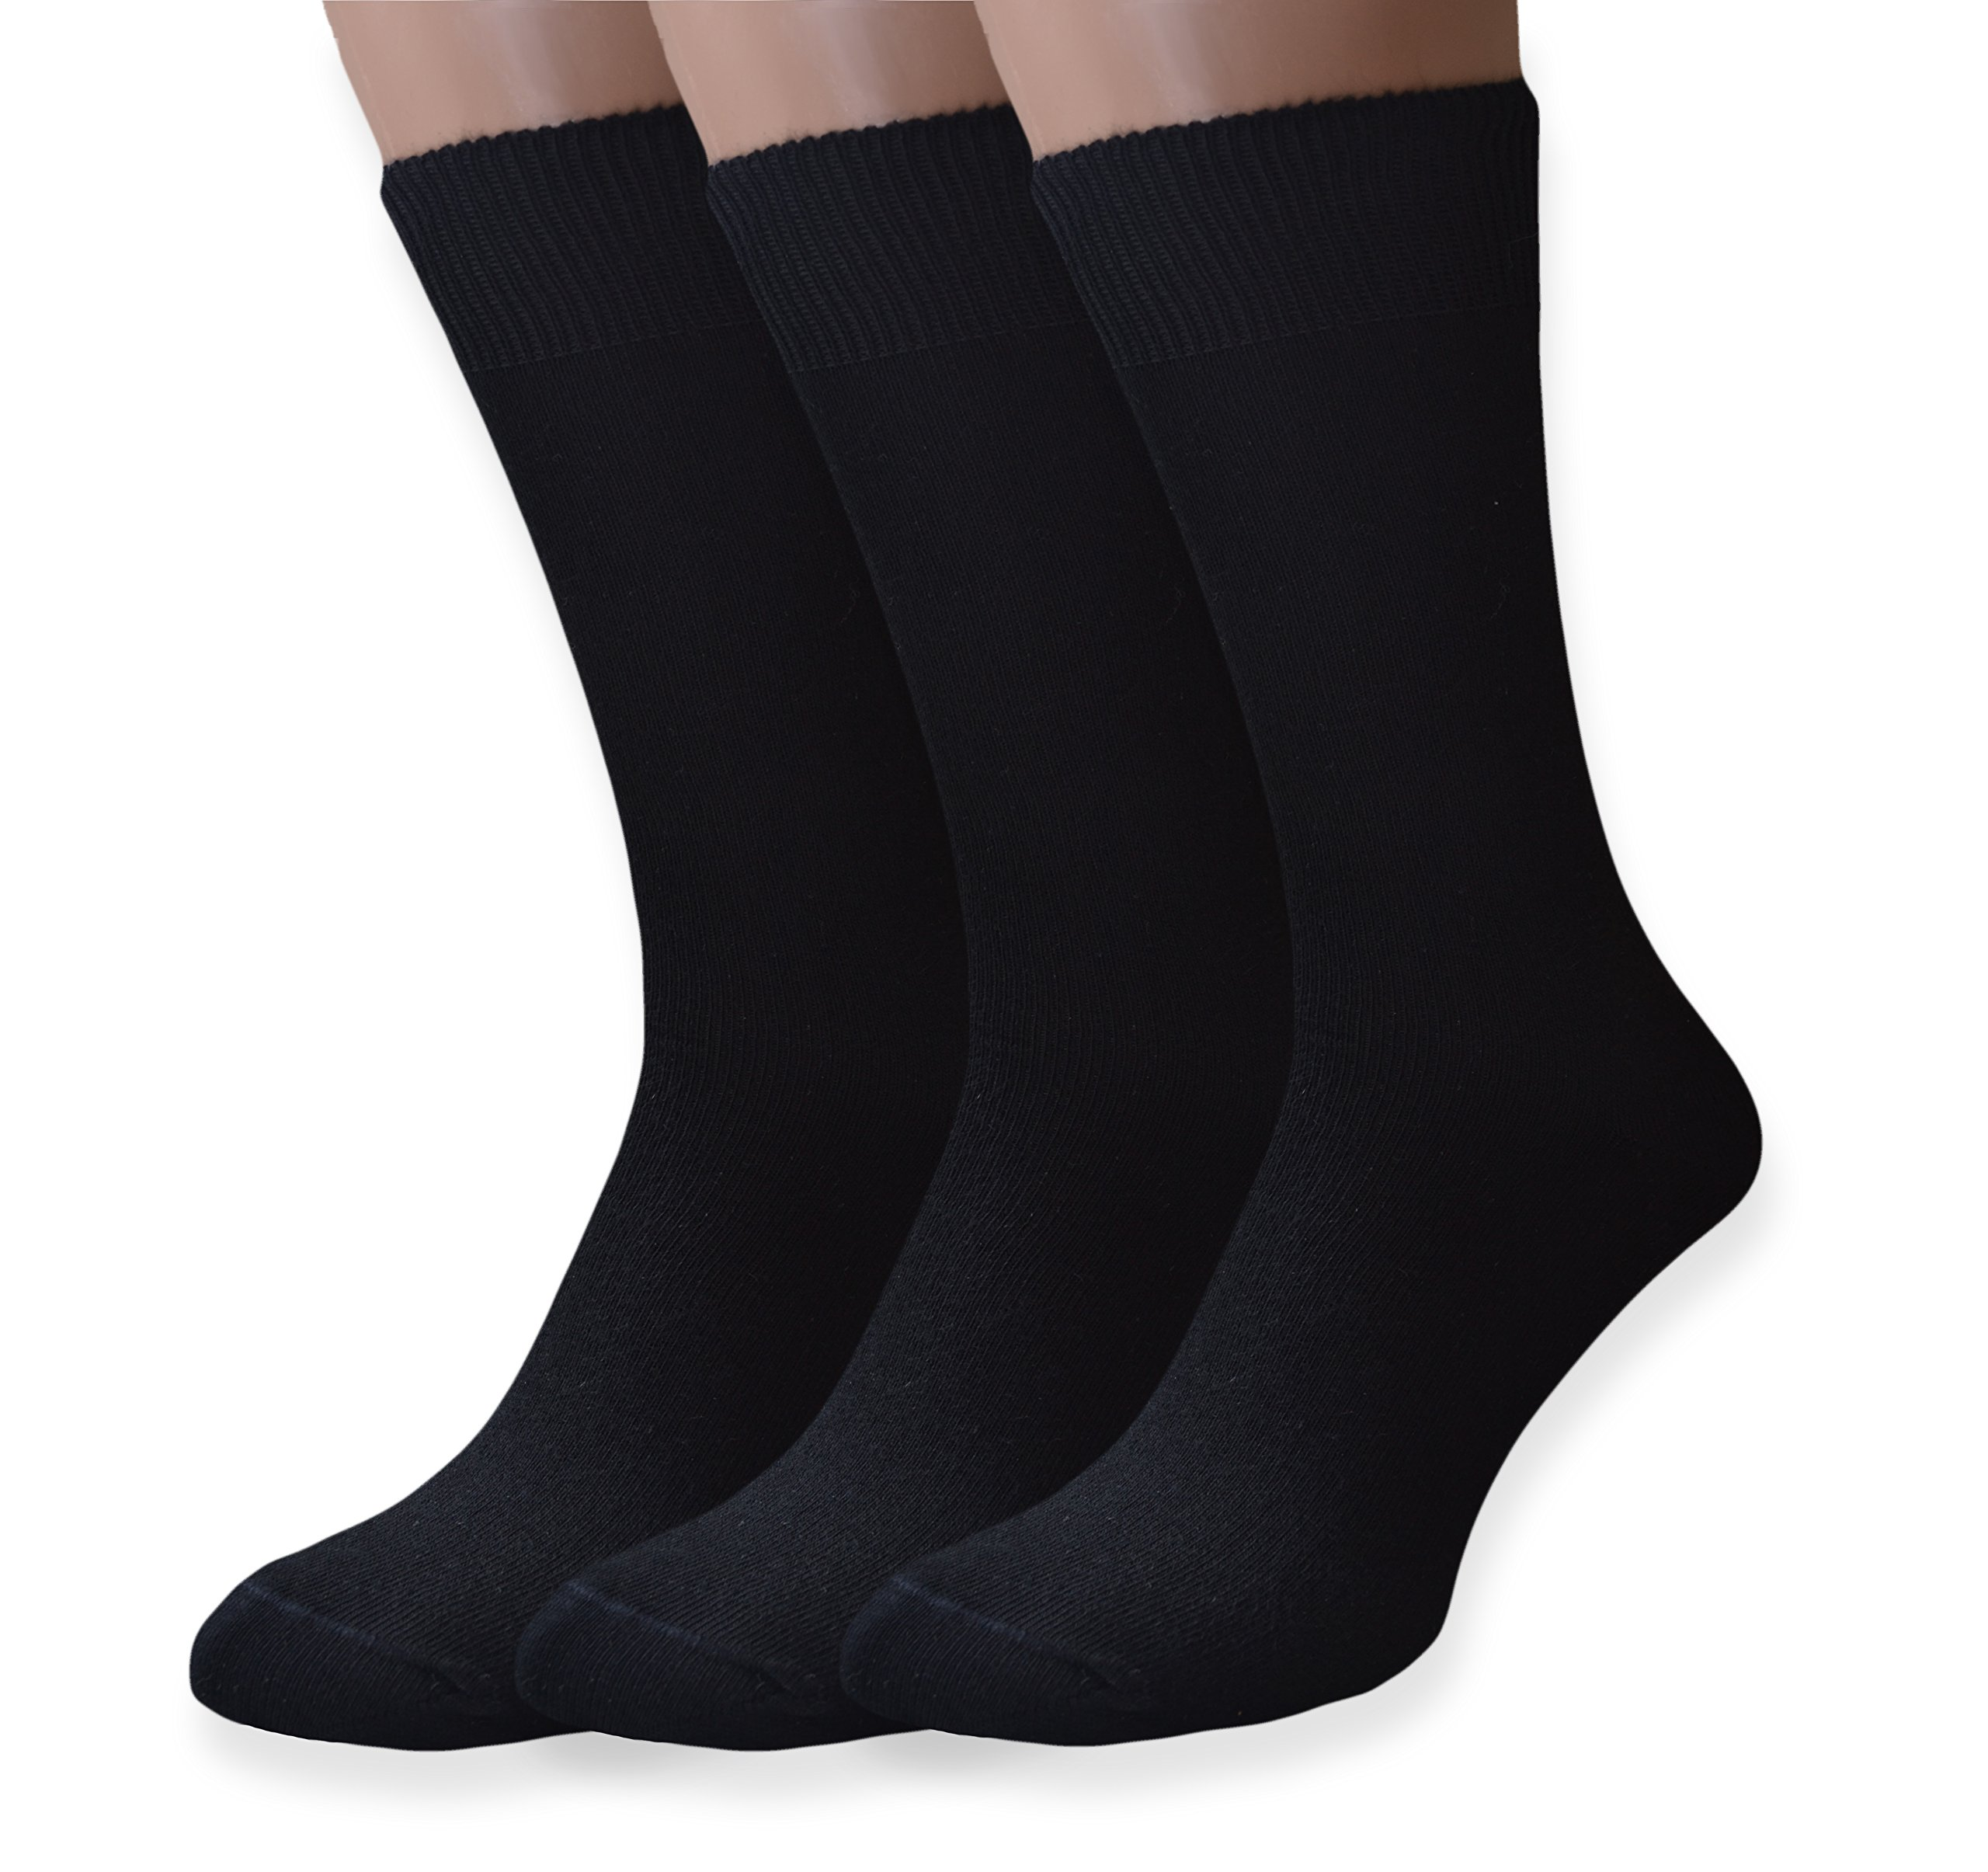 PETANI Mens Socks, 3 pack Rich European Dress Organic Cotton Socks Men Black (L) by PETANI